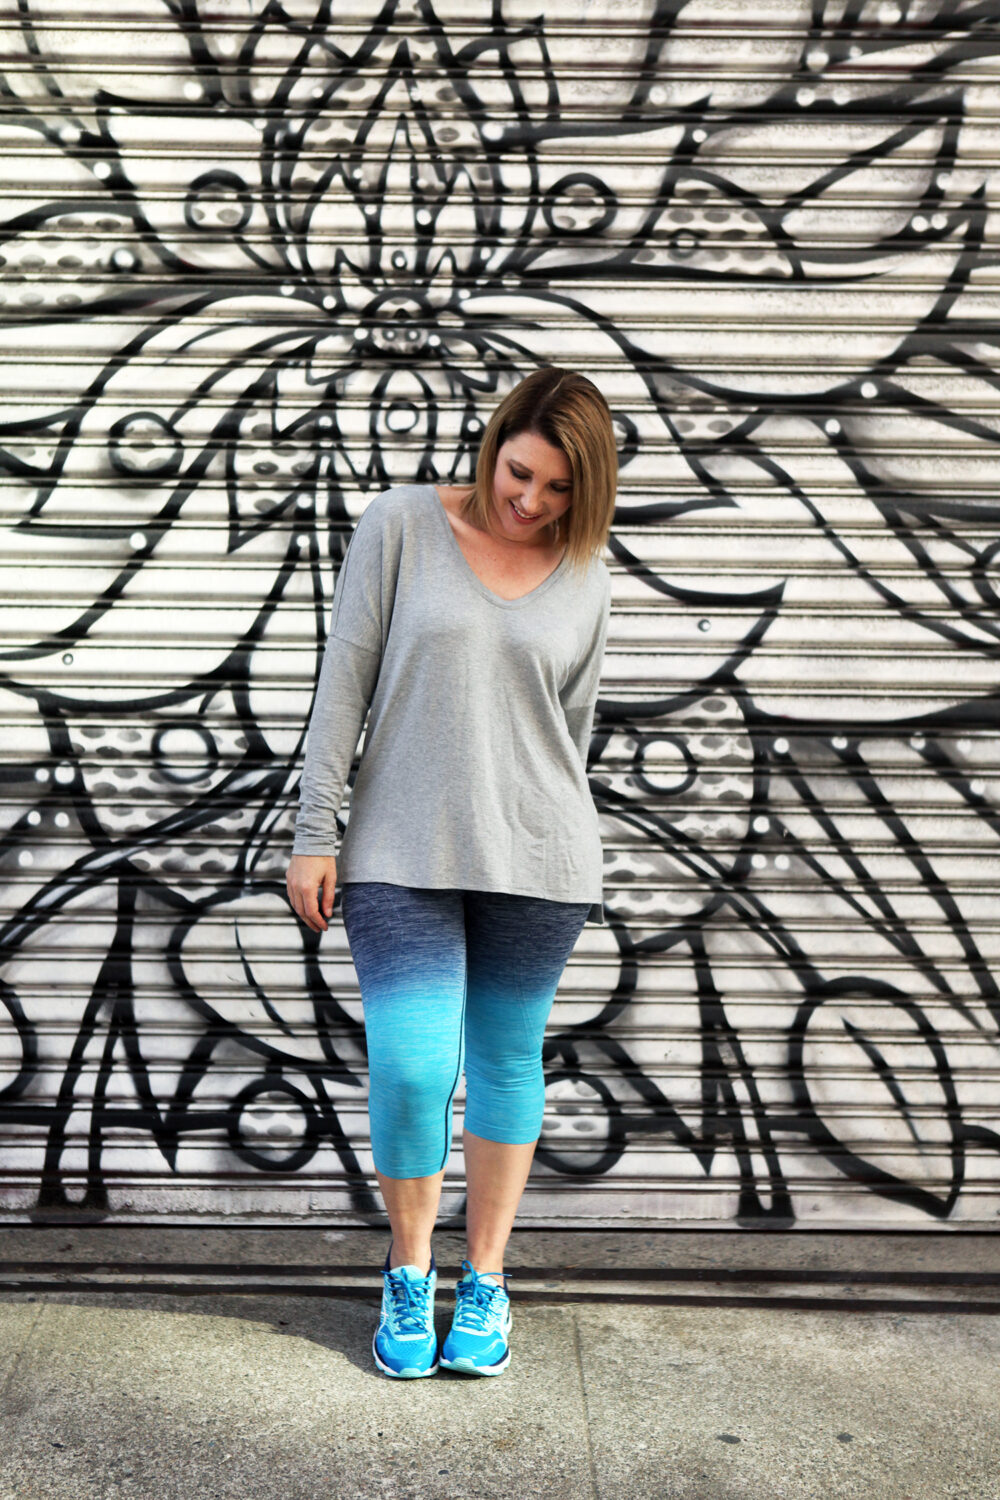 On the search for running tights? These are the BEST workout pants for a pear shape....and are perfect for long runs!